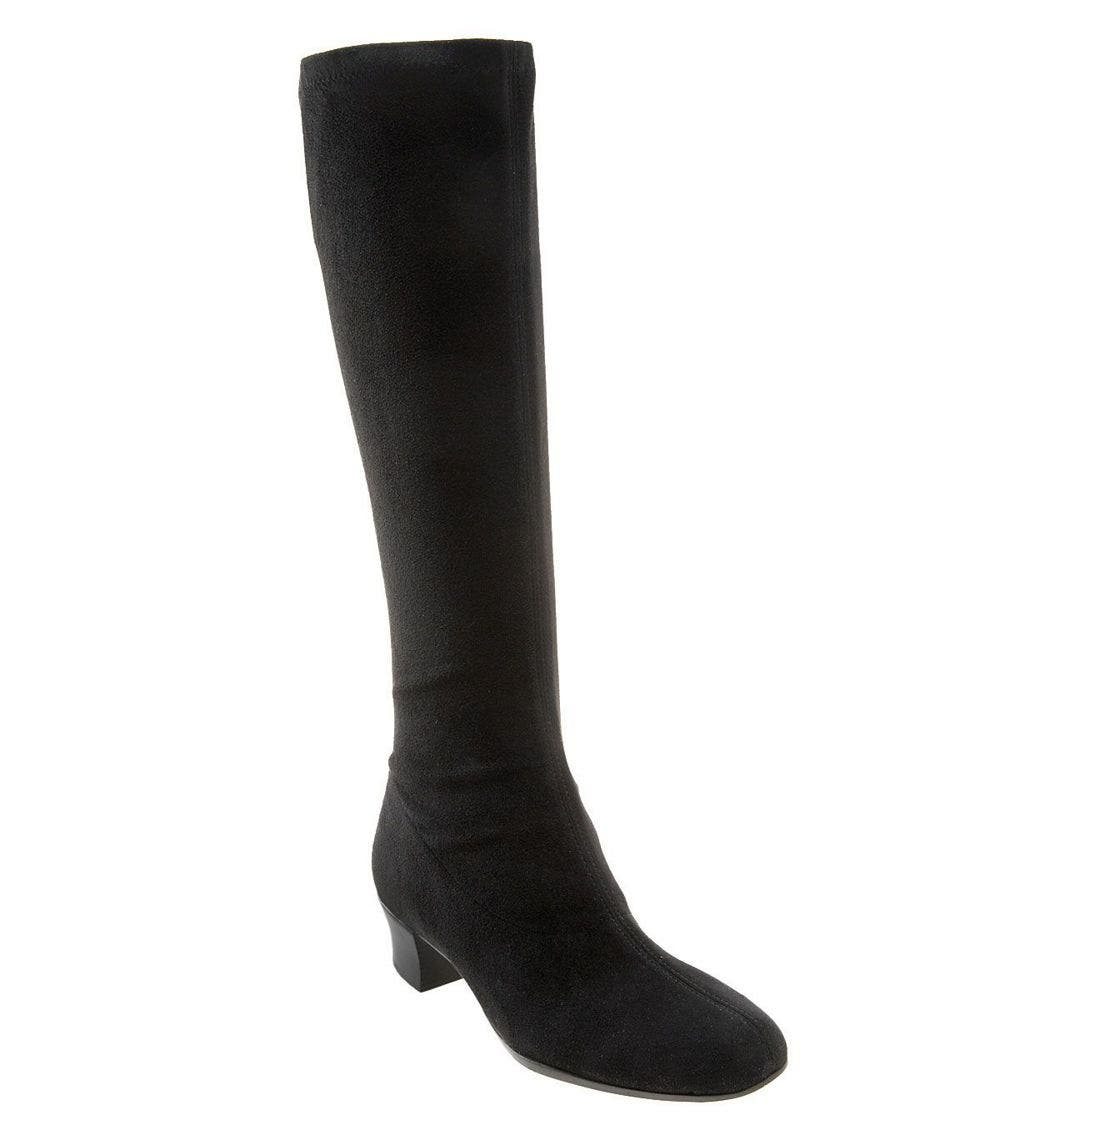 Main Image - Munro 'Samantha' Tall Stretch Boot